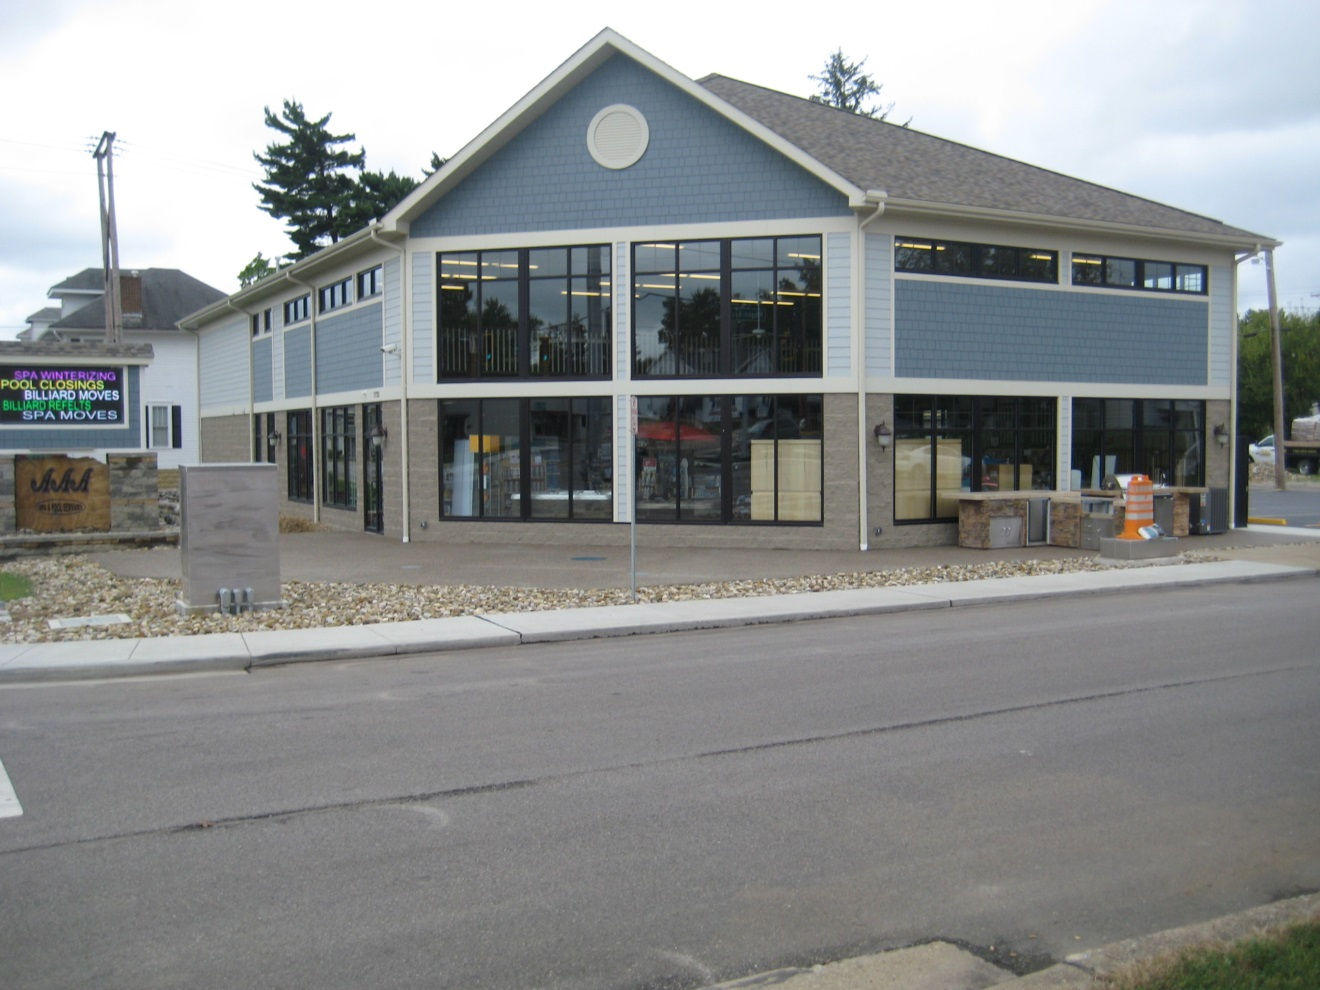 /img/Commercial Construction AAA Pools Spas 1735 Maple Ave Zanesville OH 2